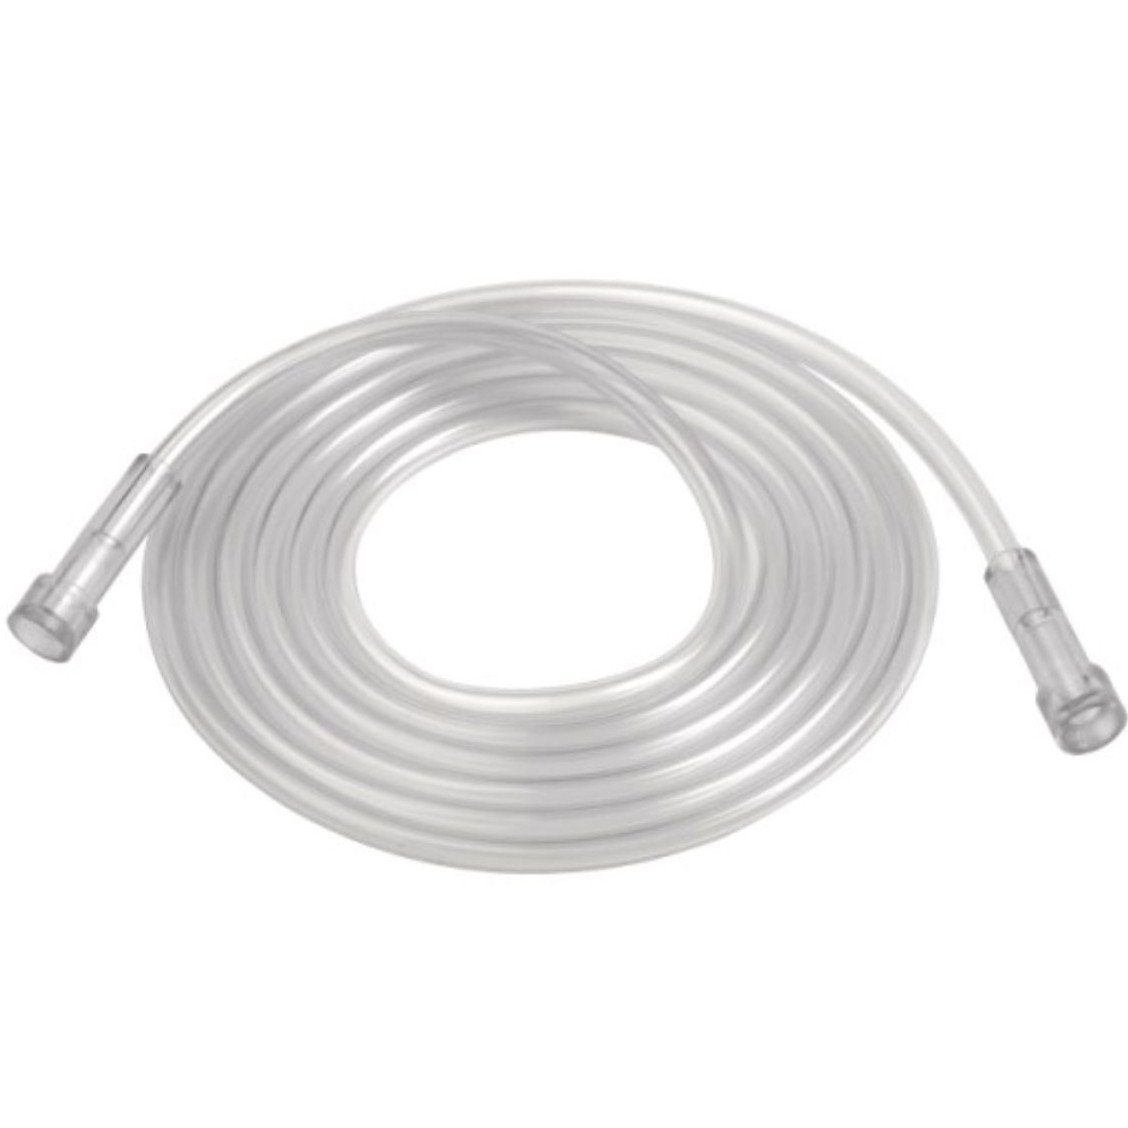 Allied Healthcare 7' Smooth Bore Tubing (50/Case)